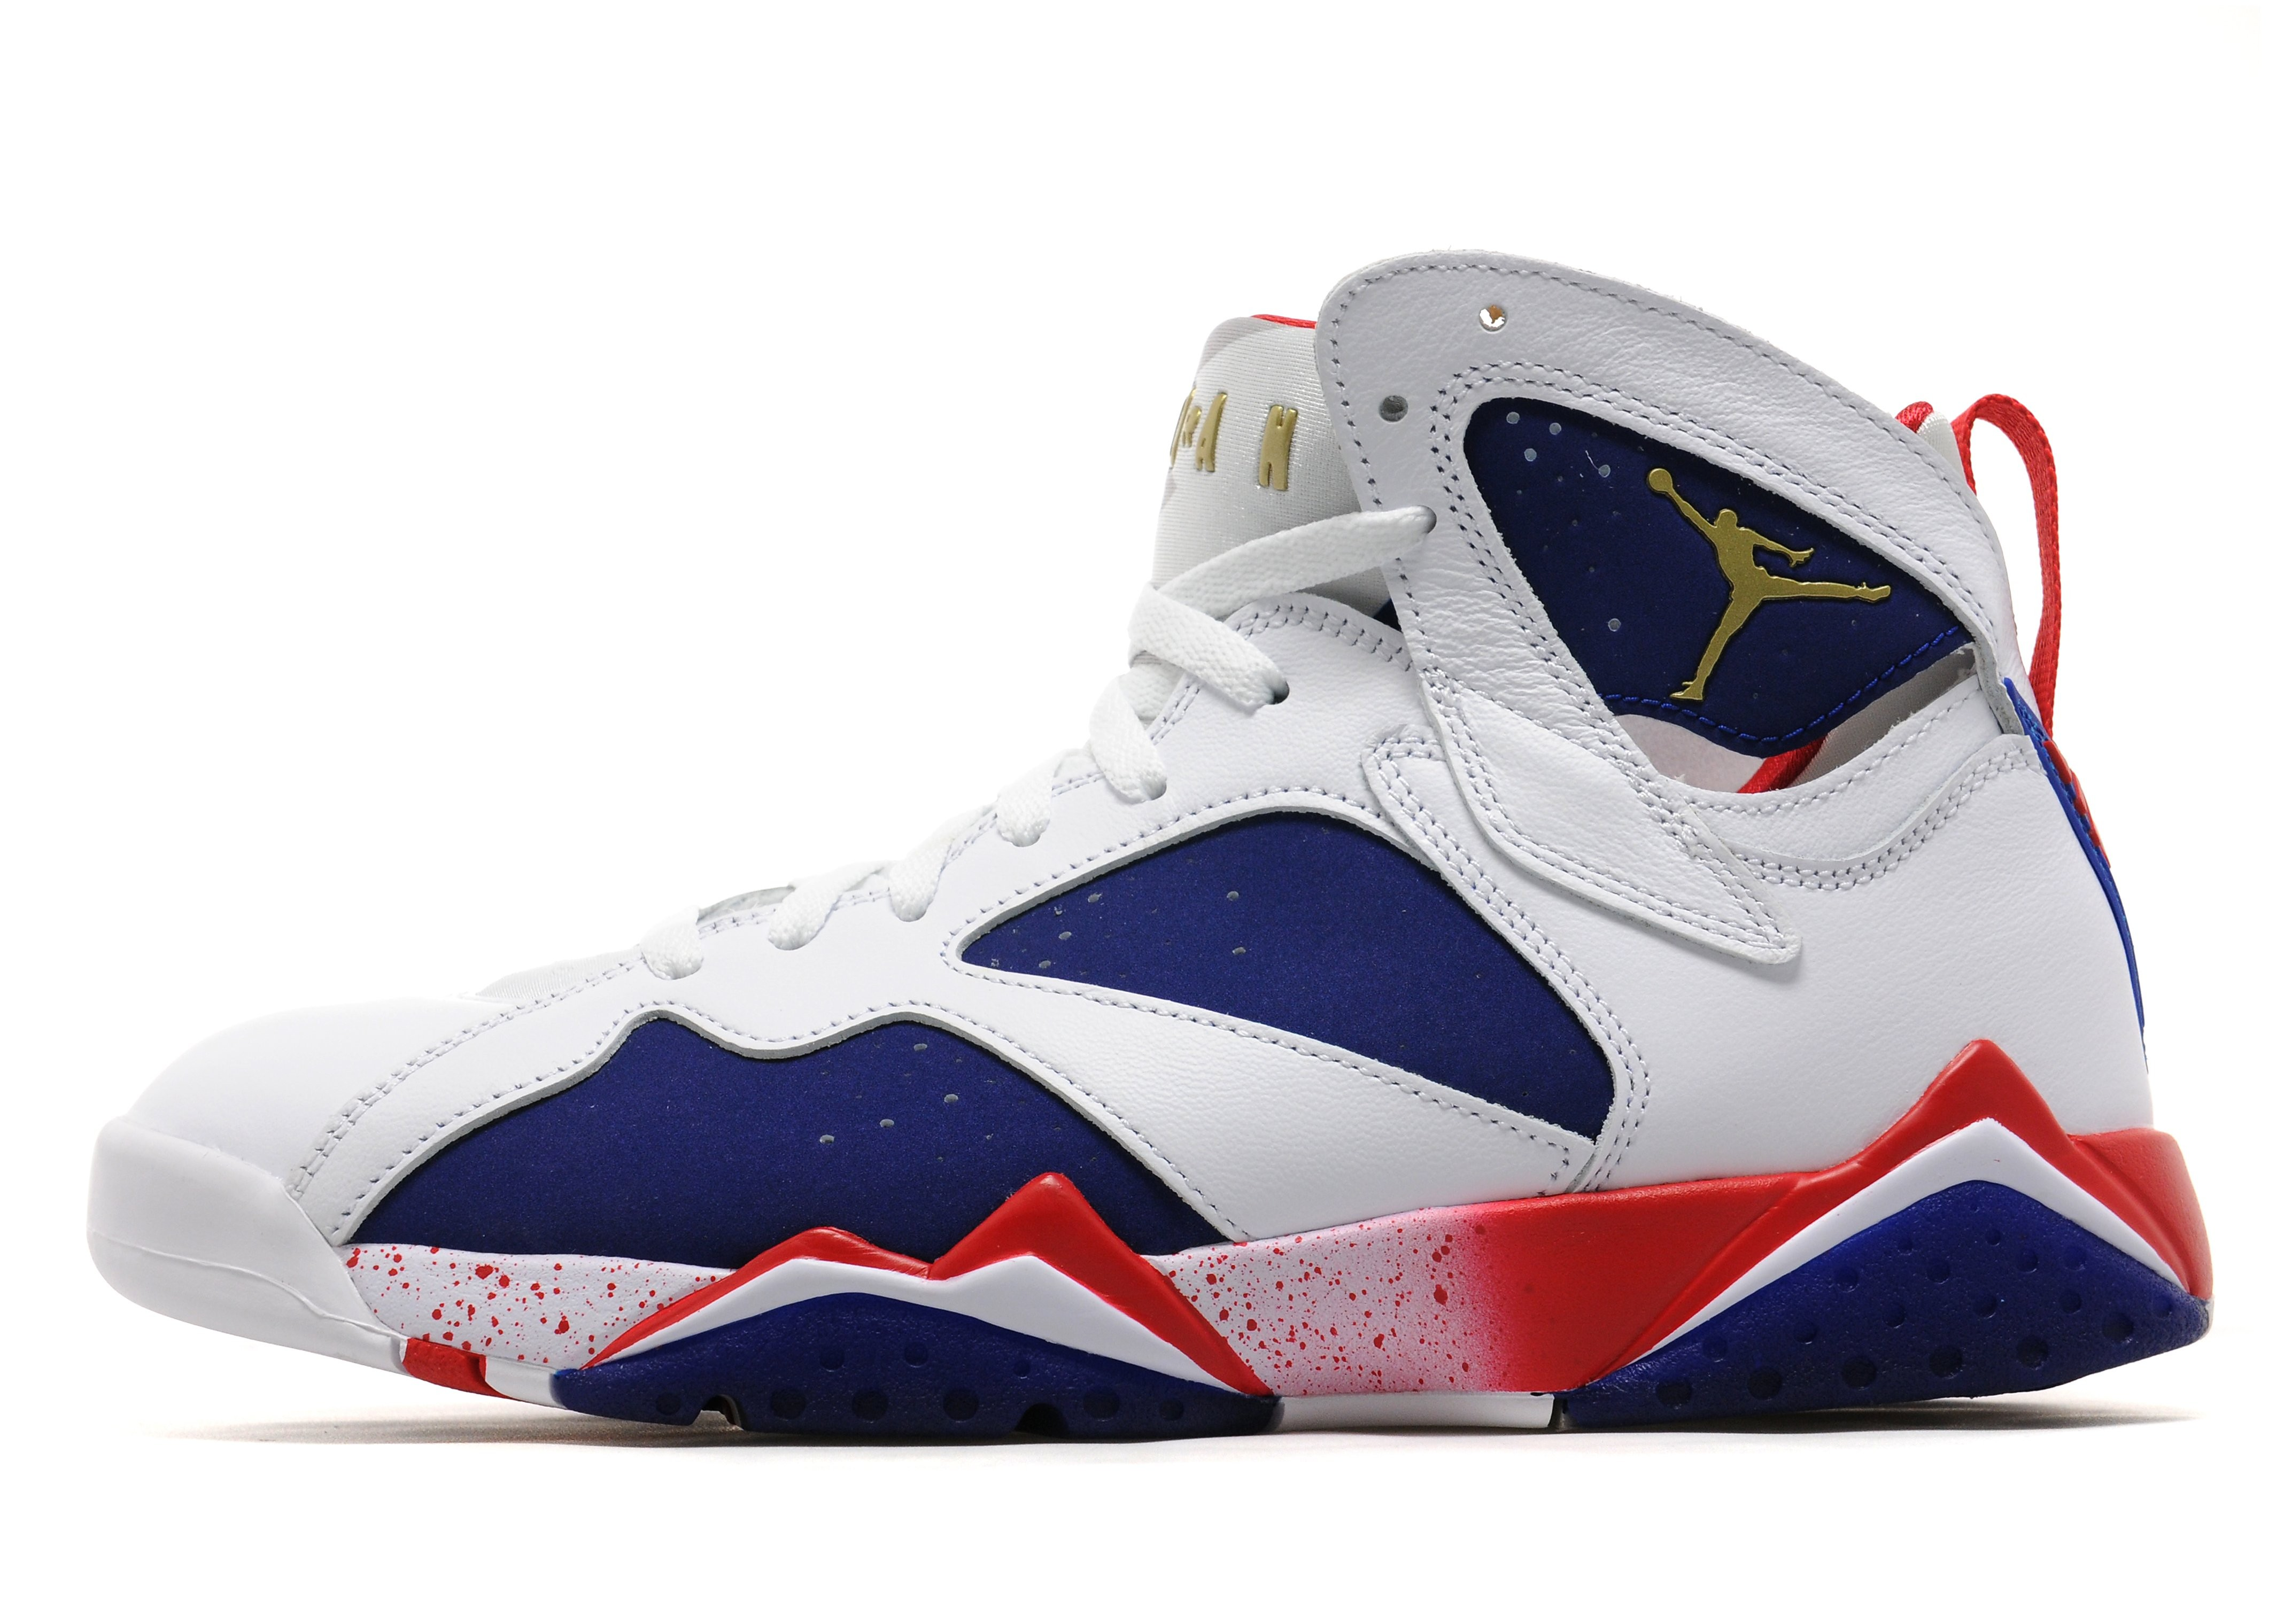 Jordan Air Retro 7 'Alternate'